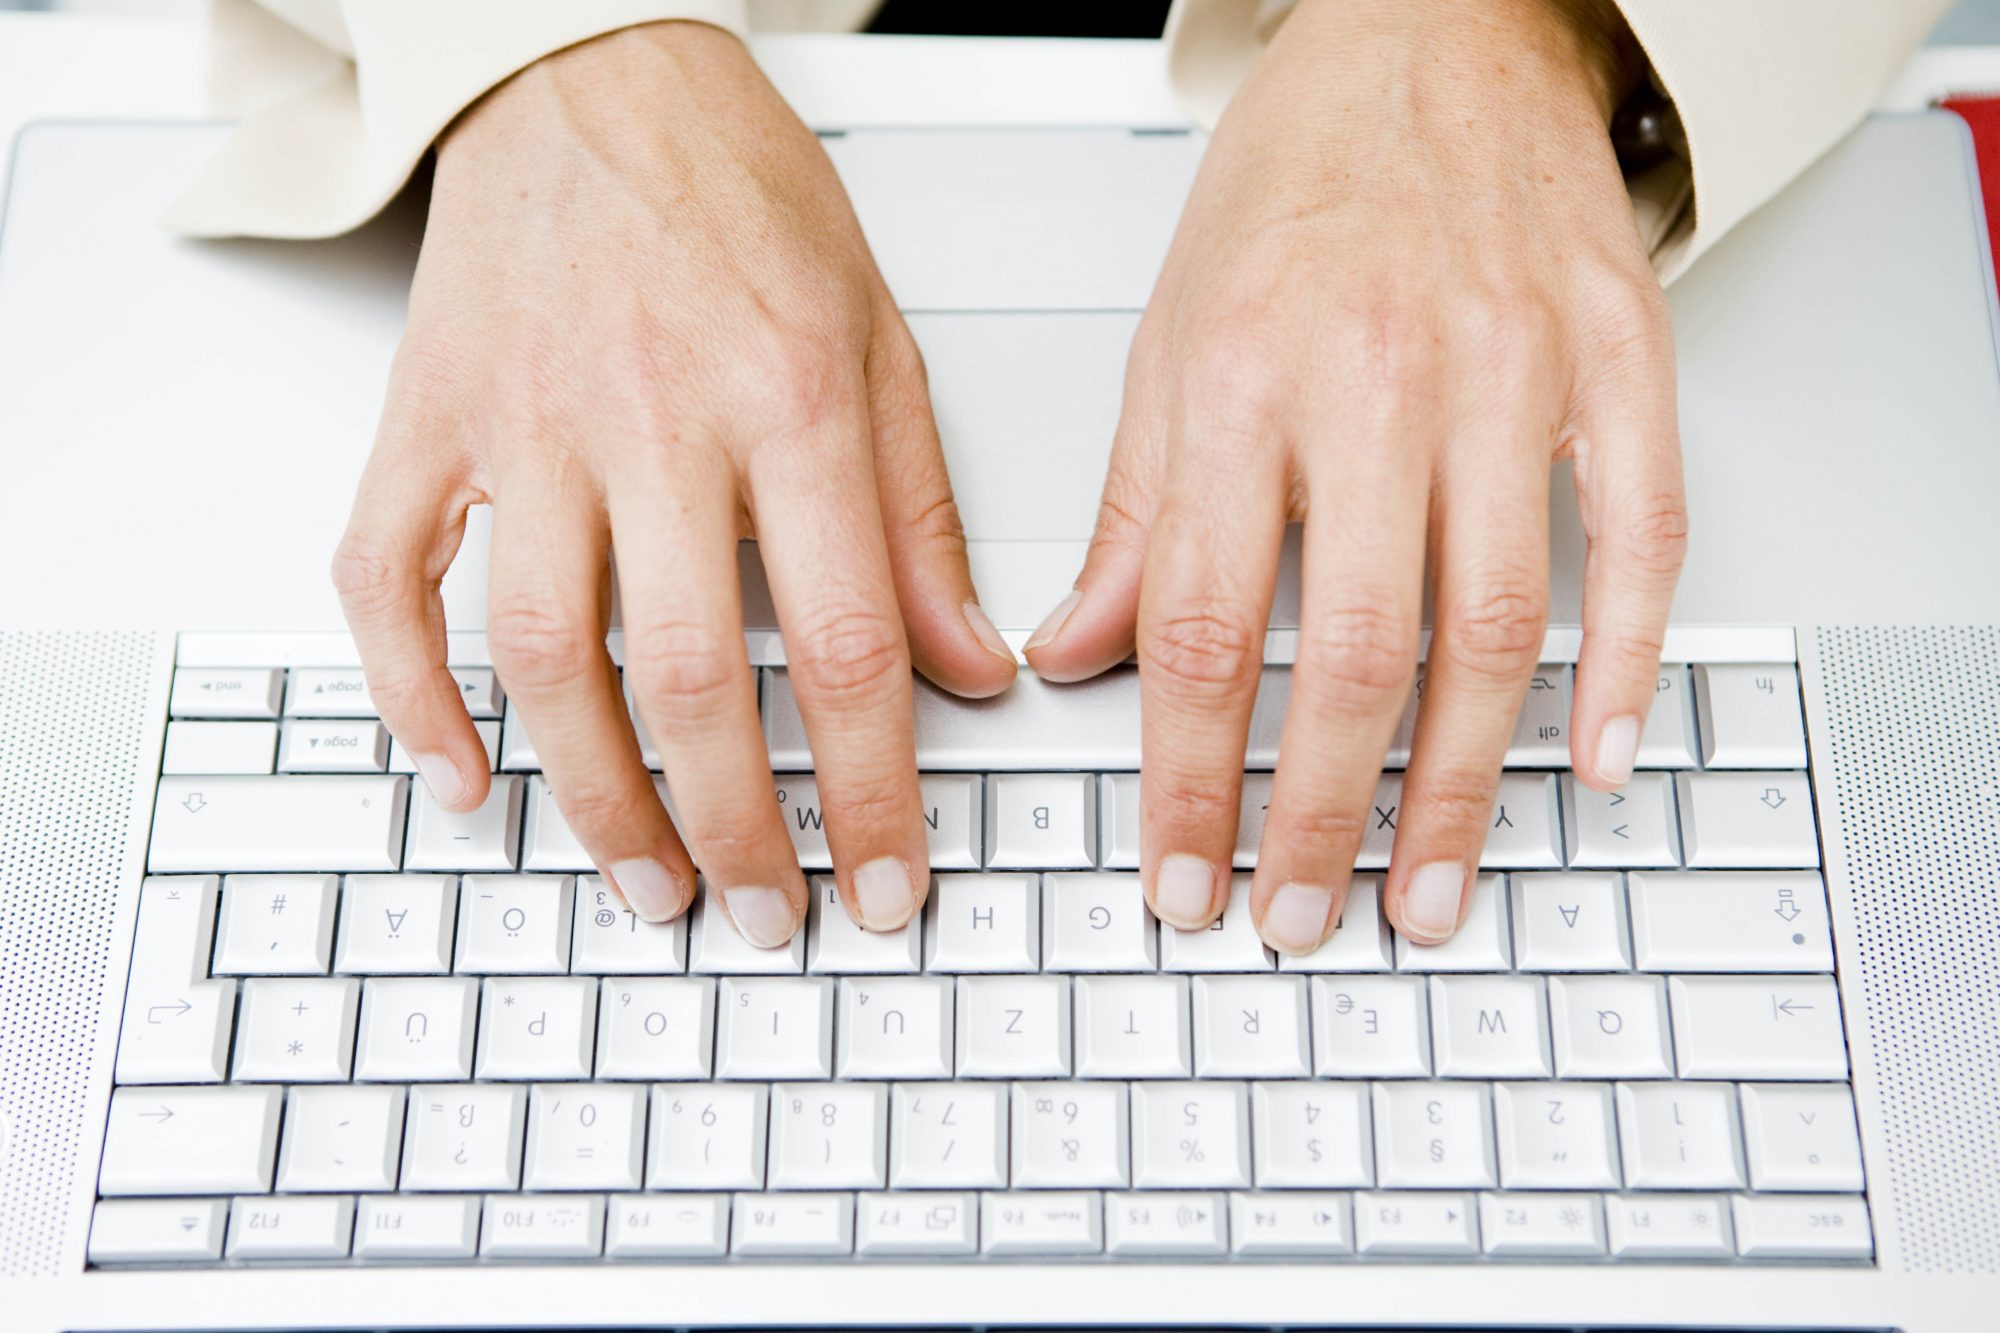 hands-typing-on-keyboard